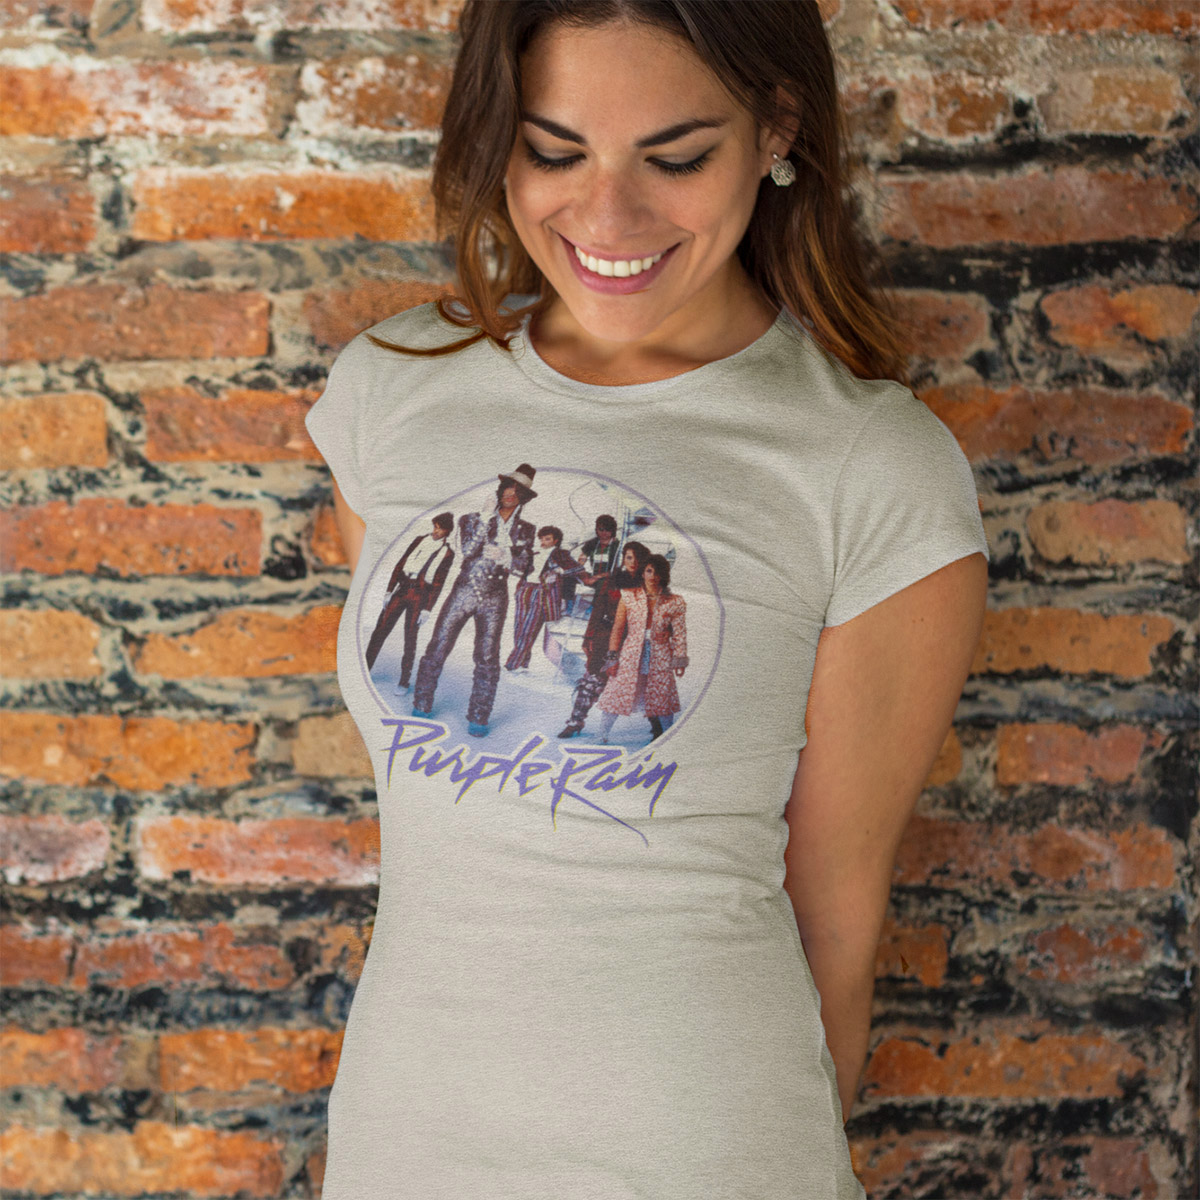 Purple Rain Revolution Scoop Neck Women's Tee (Oatmeal)